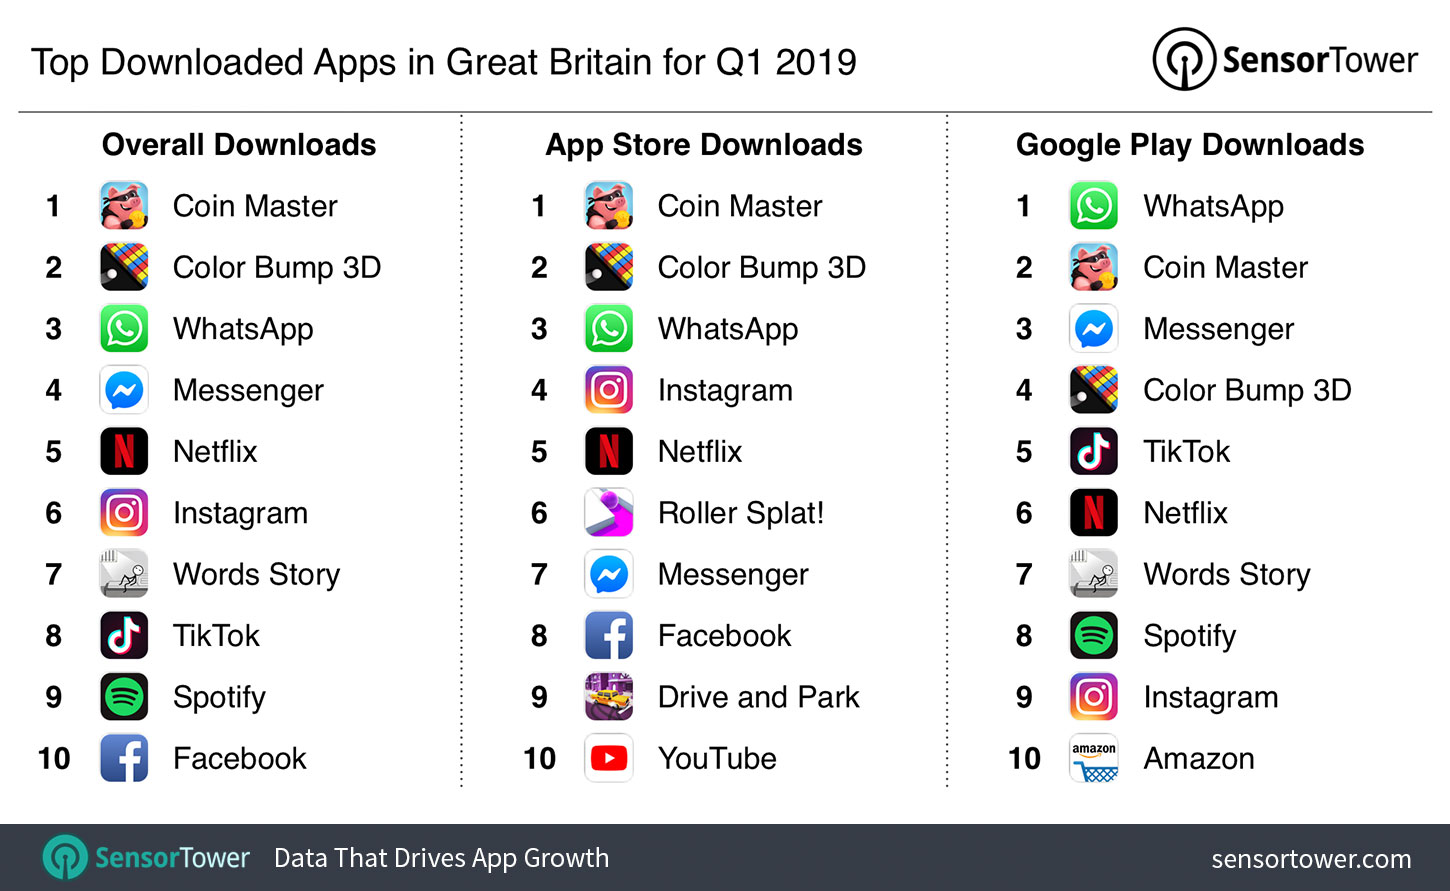 Top Apps in Great Britain for Q1 2019 by Downloads